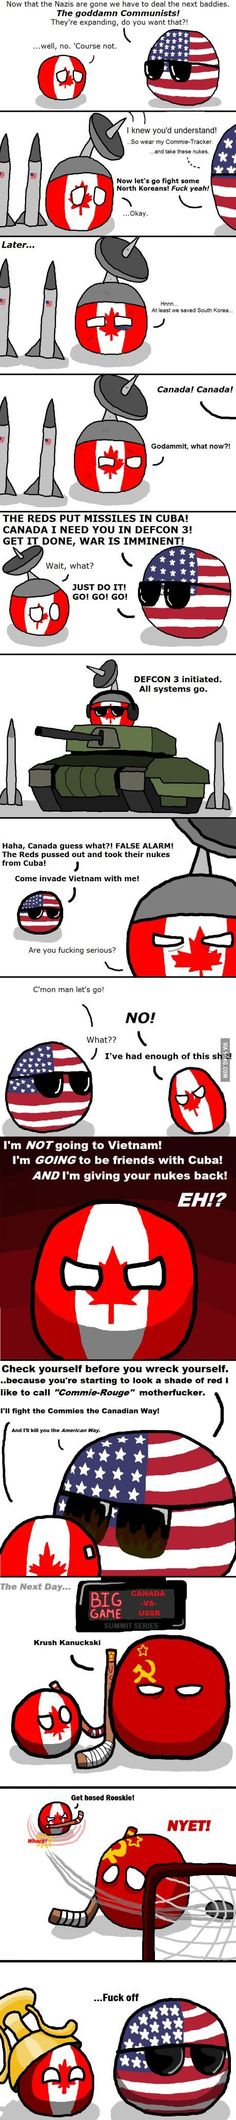 Cold War in Canada - Yes, we took part in the Korean War, stayed out of the Vietnam War (except to take in US draft dodgers :P) and challenged the USSR to a hockey series, which we won. And, yes, that's our favourite moment in the whole thing.